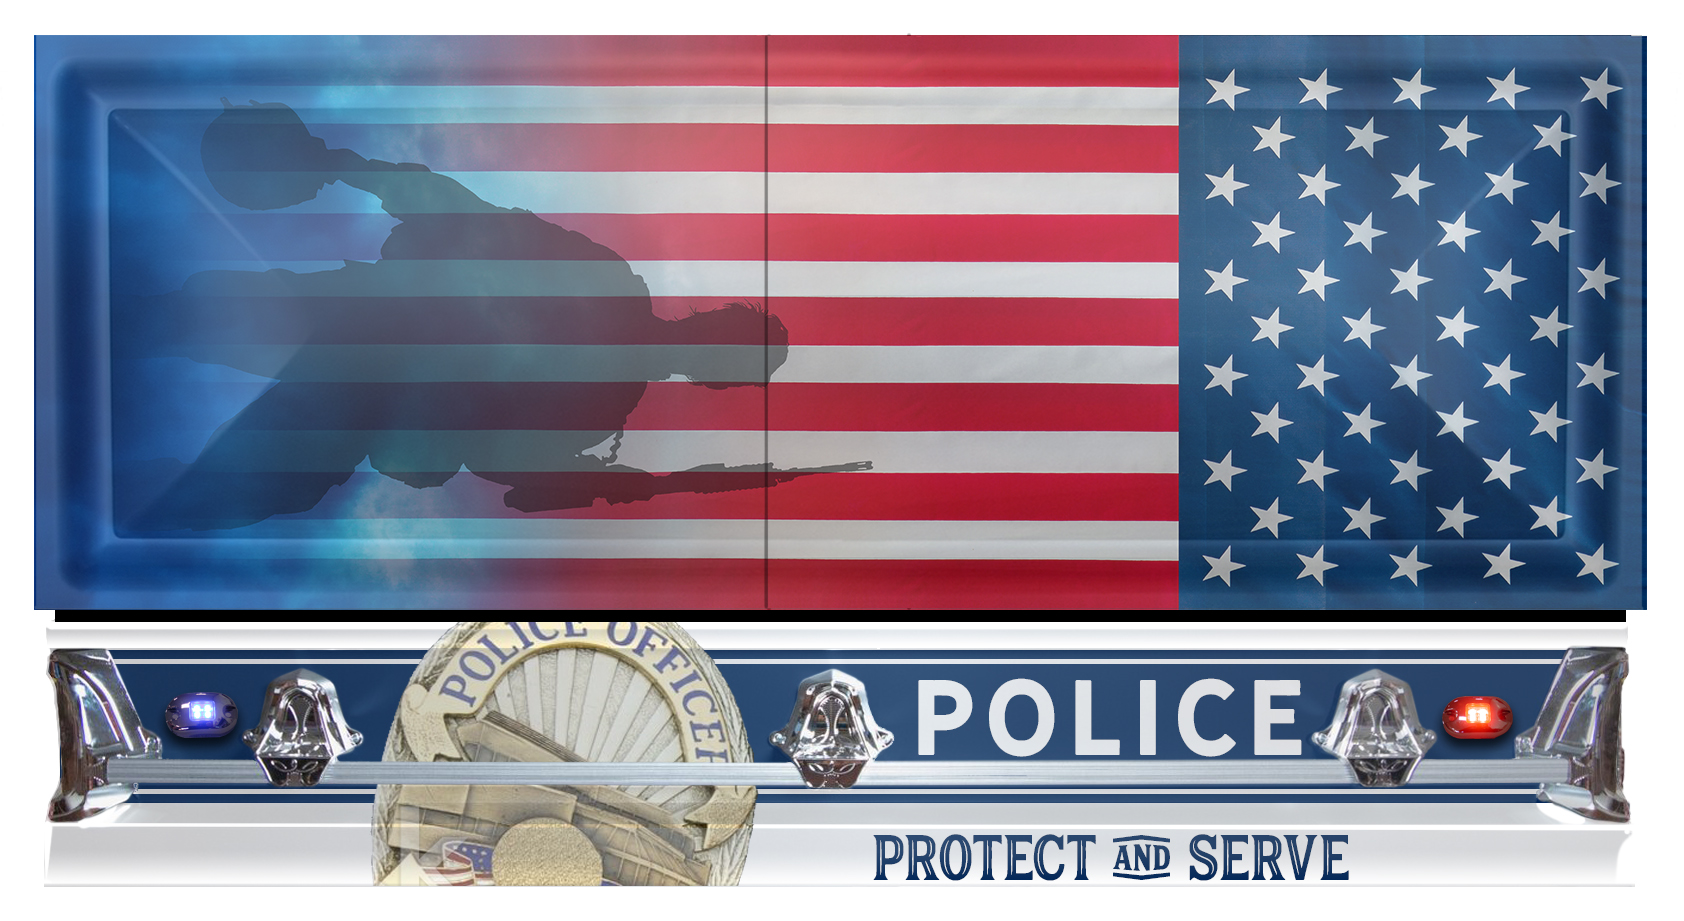 Our Hero's in Blue